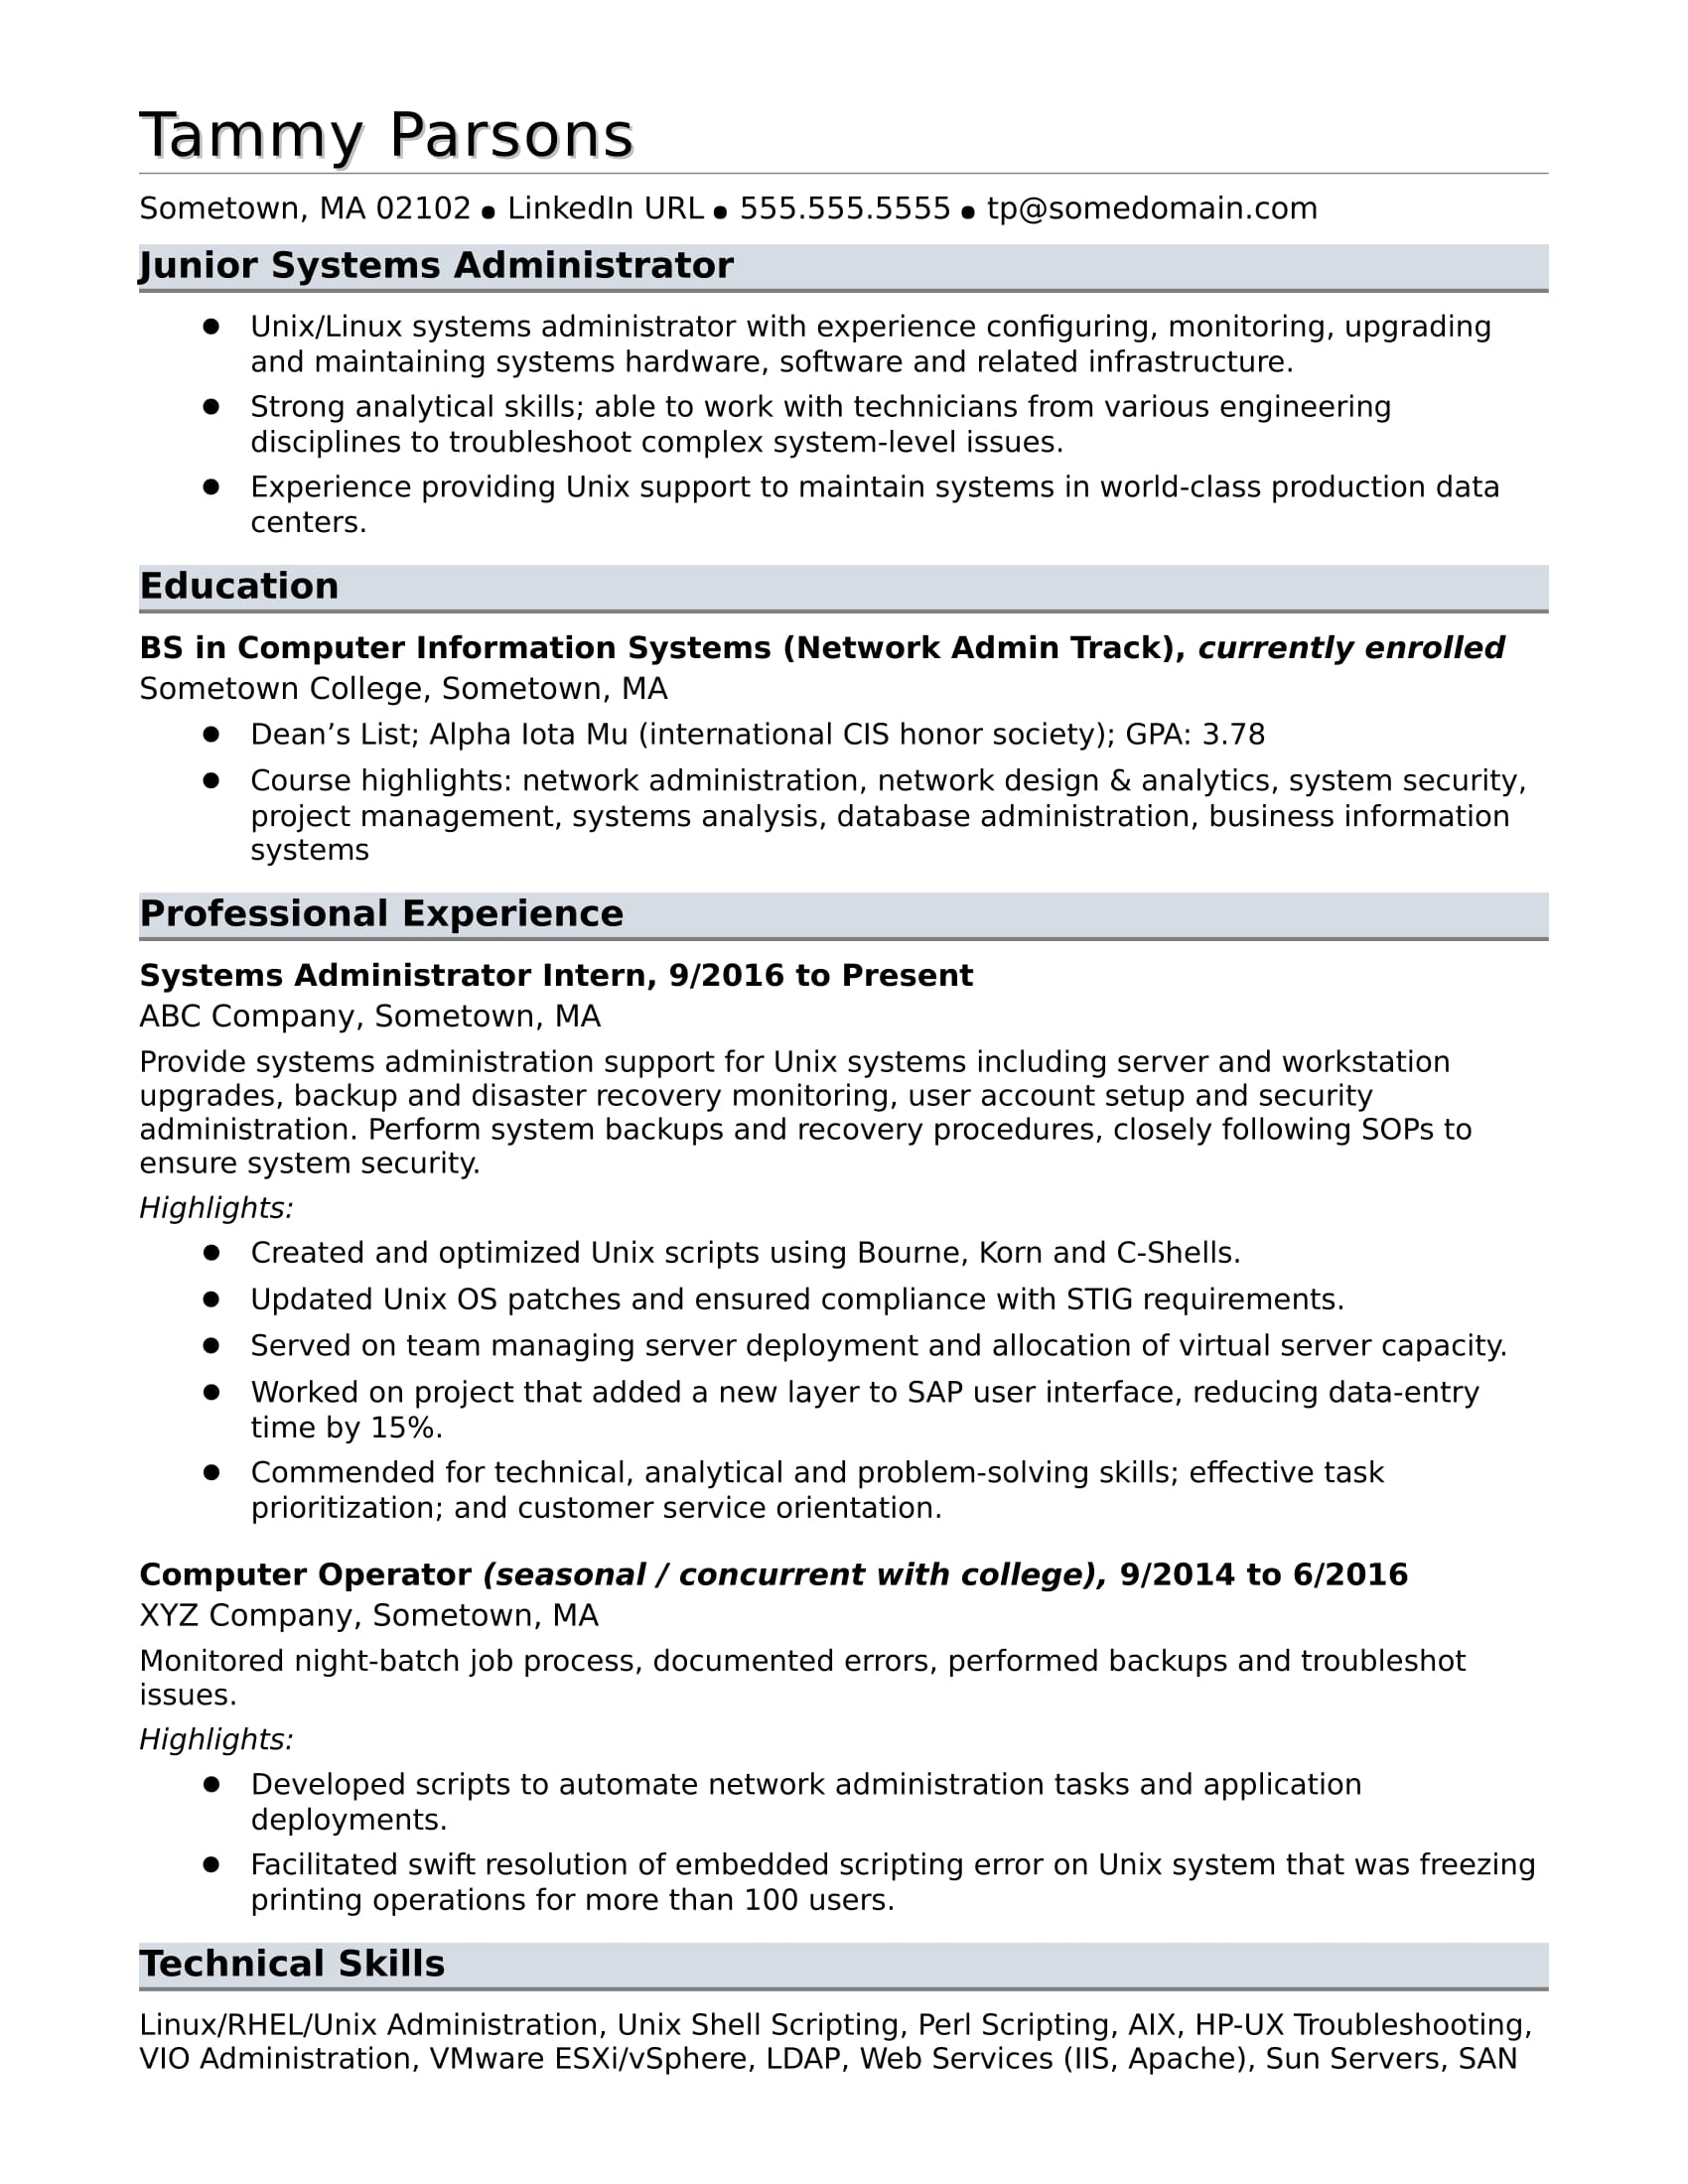 Sample Resume for an Entry-Level Systems Administrator ...